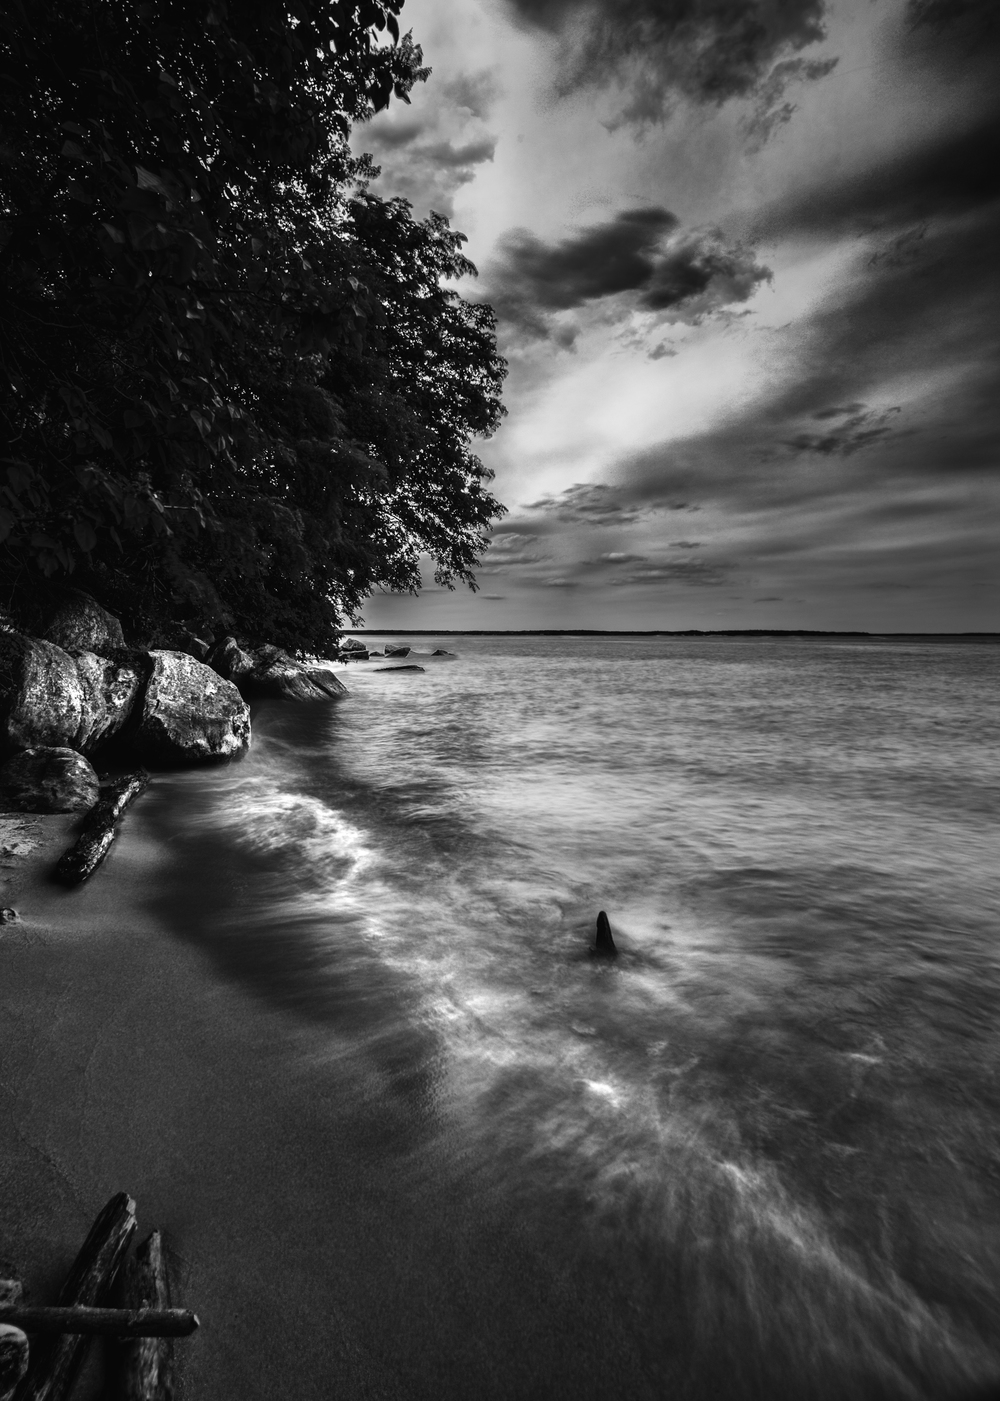 The dramatic rocks and waves at Leesylvania State Park were captured with a merge of three photographs